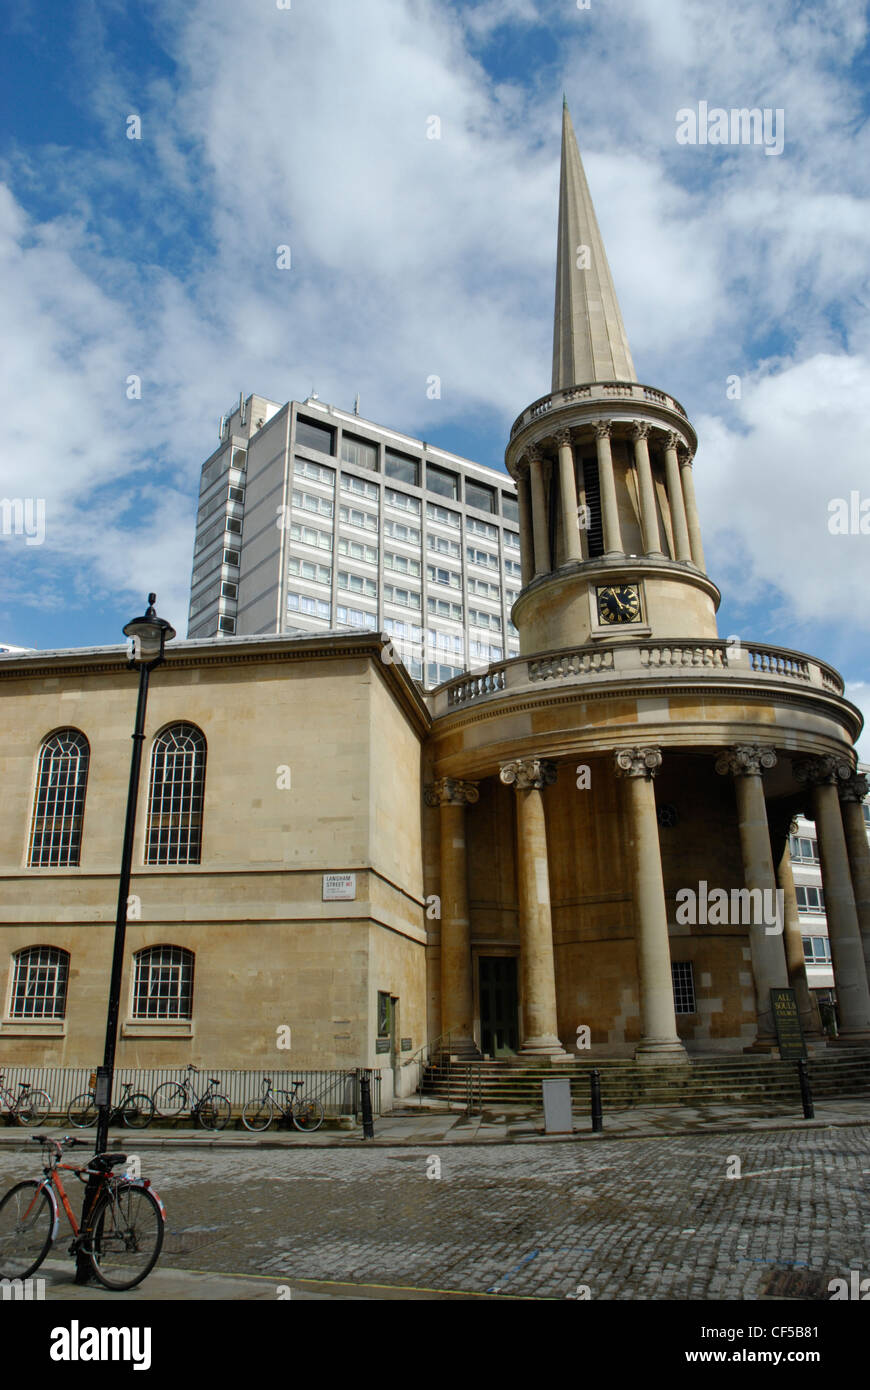 The exterior of All Souls Church in Langham Place - Stock Image